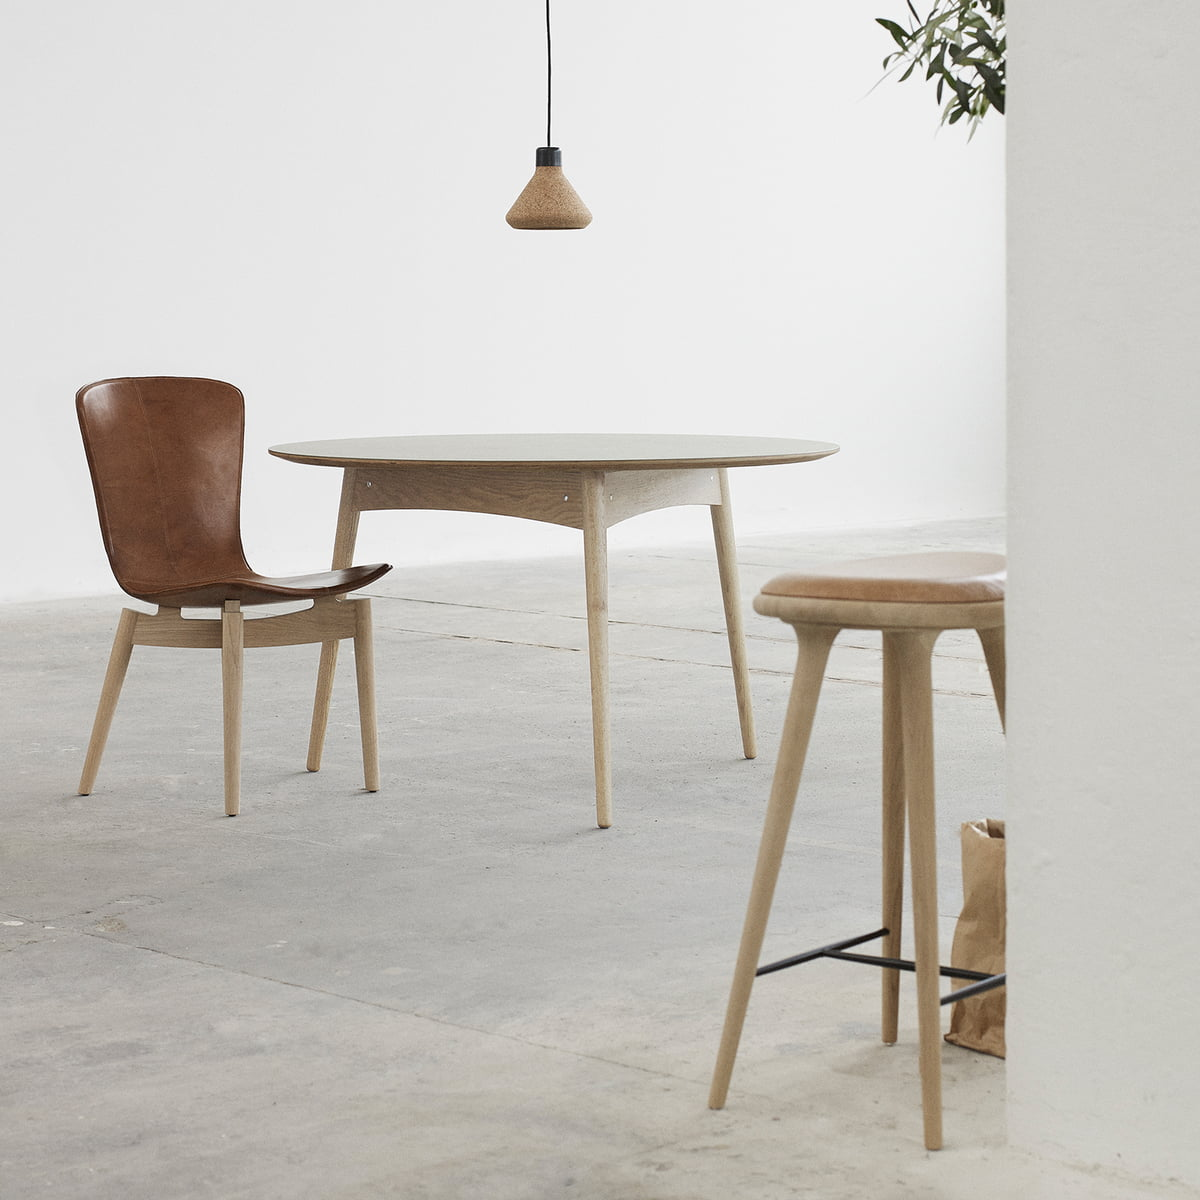 Shell Dining Chair by Mater in the shop